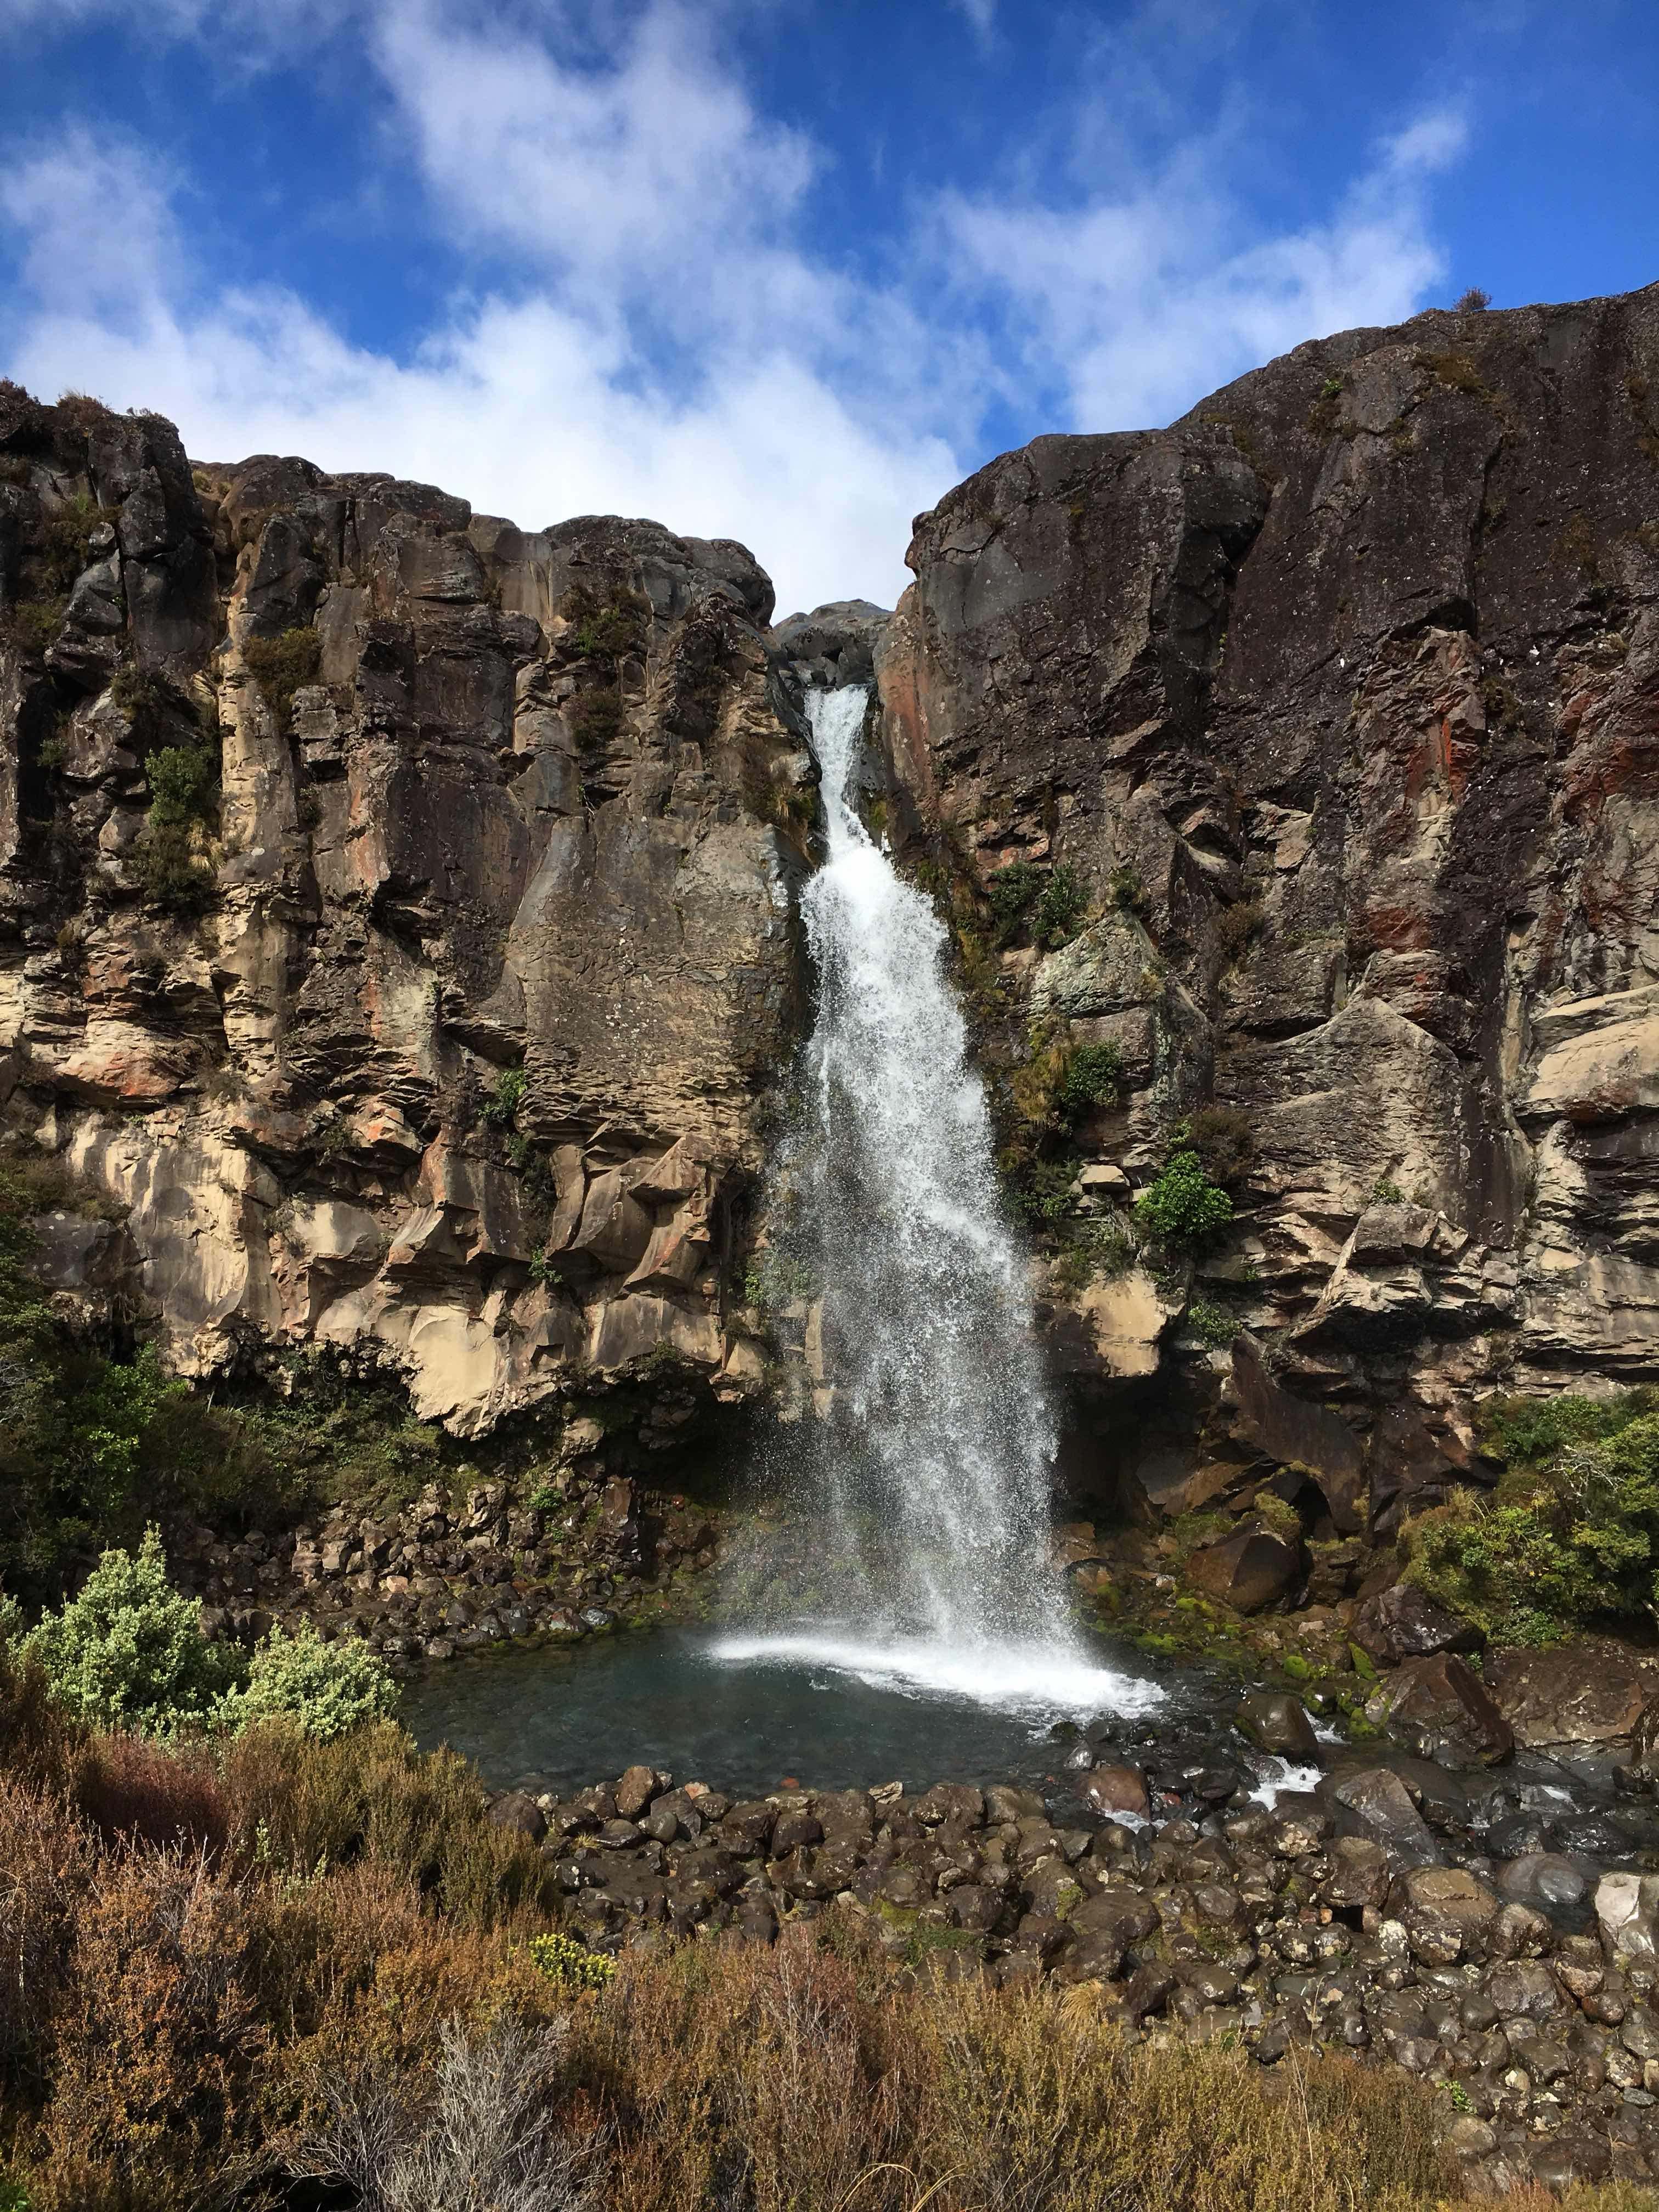 Taranaki Falls, Tongariro National Park, New Zealand